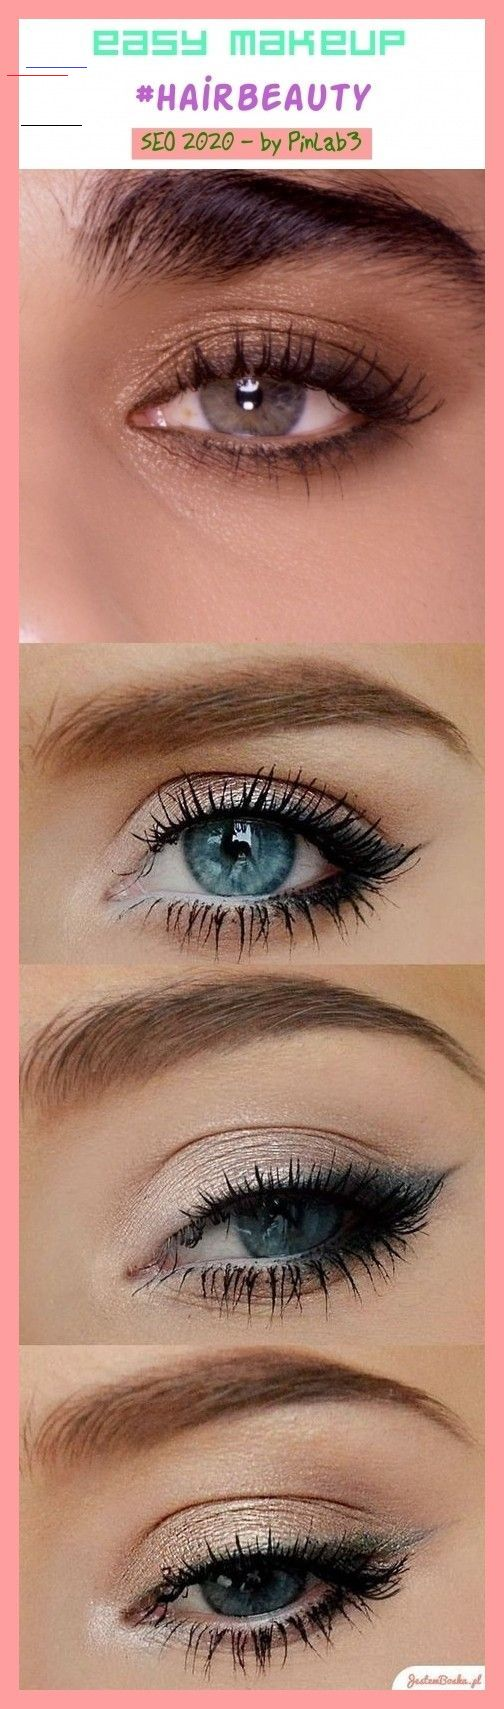 Easy makeup makeup einfaches Makeup & maquillage facile